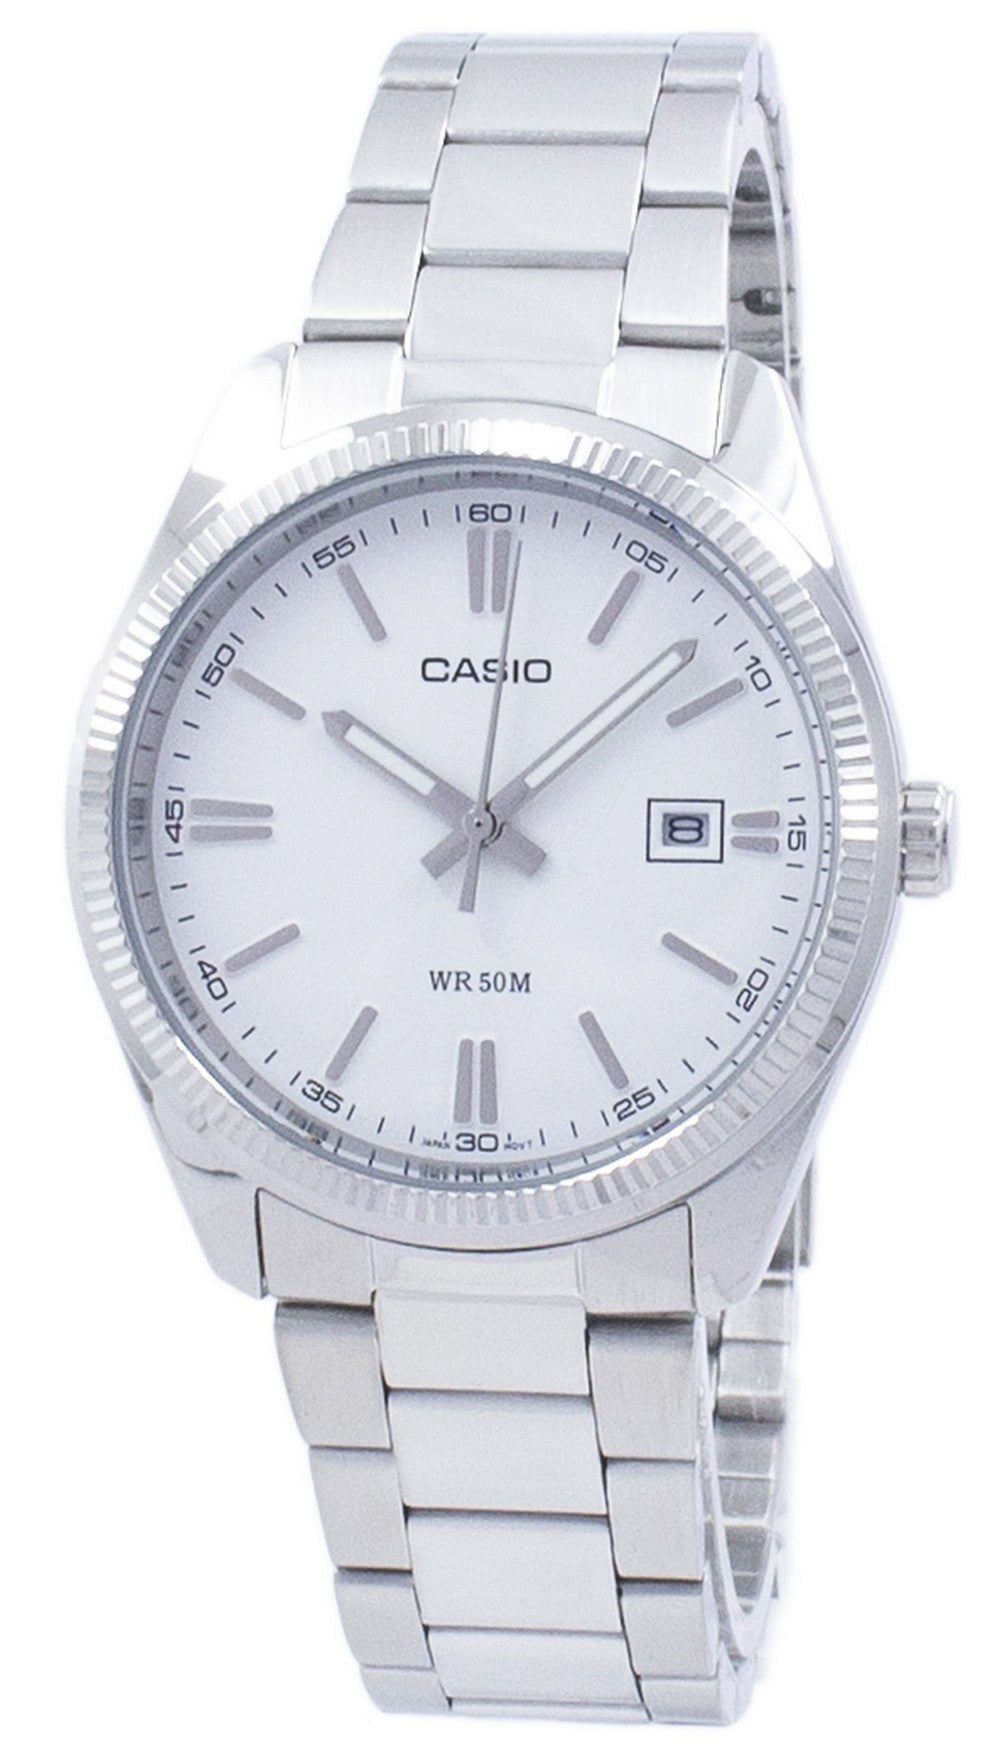 Casio Analog Quartz MTP-1302D-7A1V MTP1302D-7A1V Men's Watch